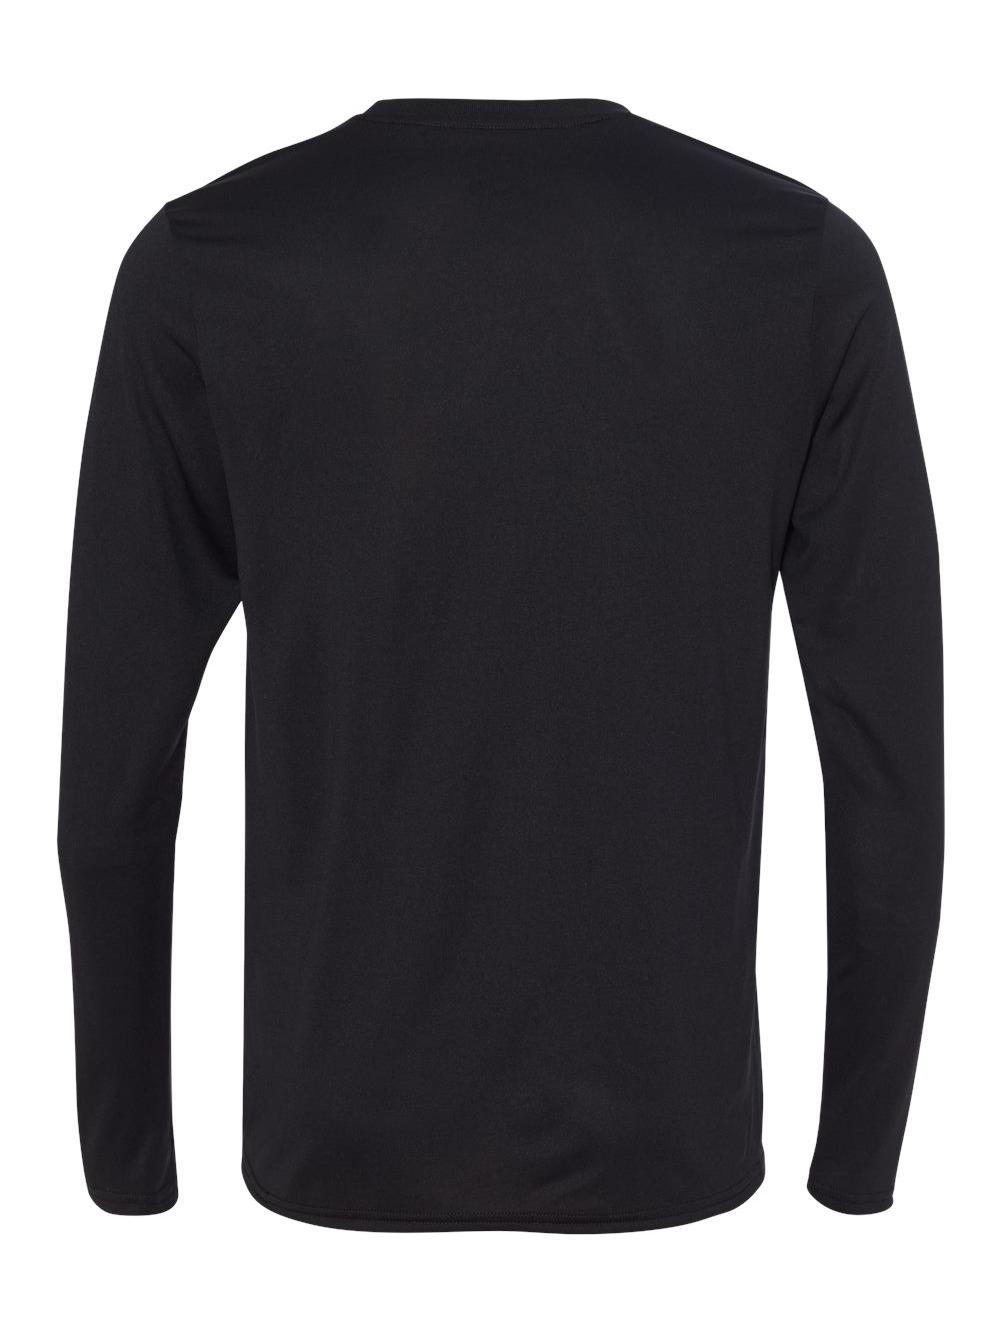 Gildan-Tech-Performance-Long-Sleeve-T-Shirt-47400 thumbnail 4